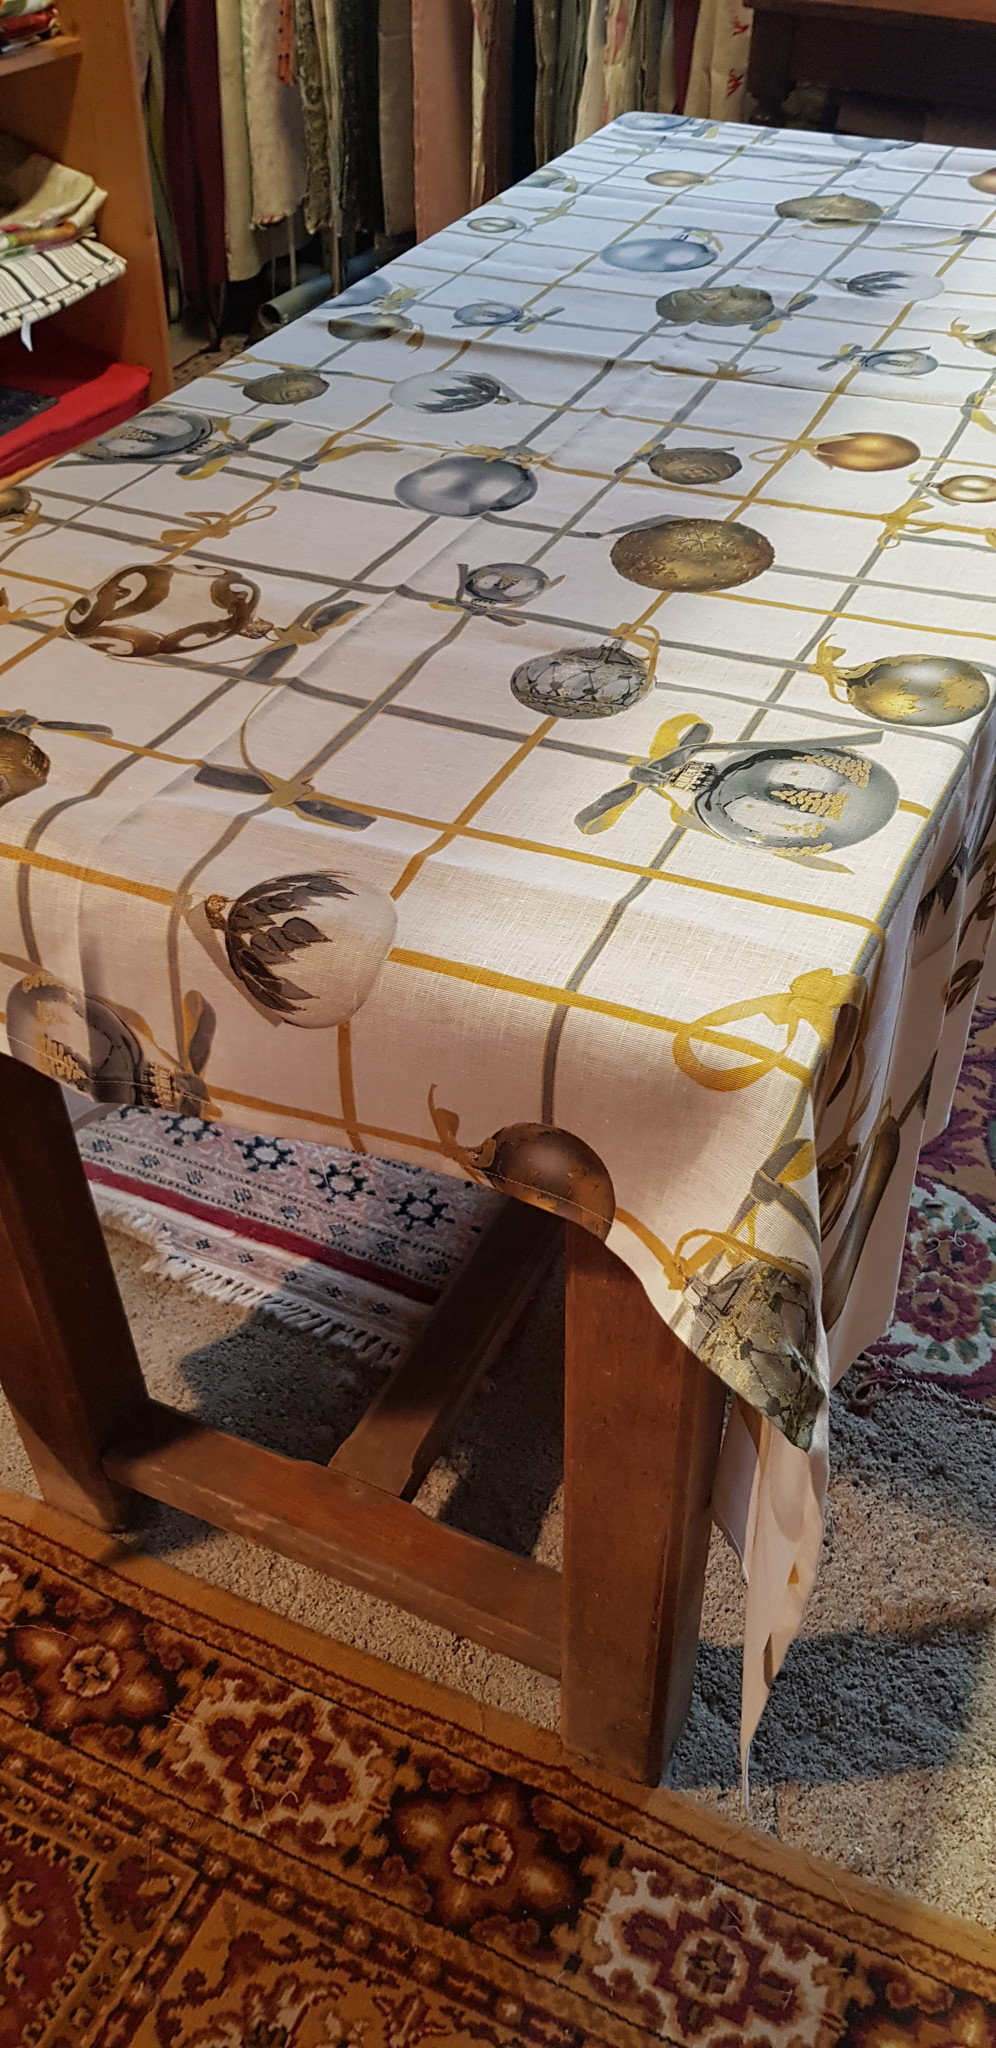 Le grenier du lin Tablecloth with Christmas decorations